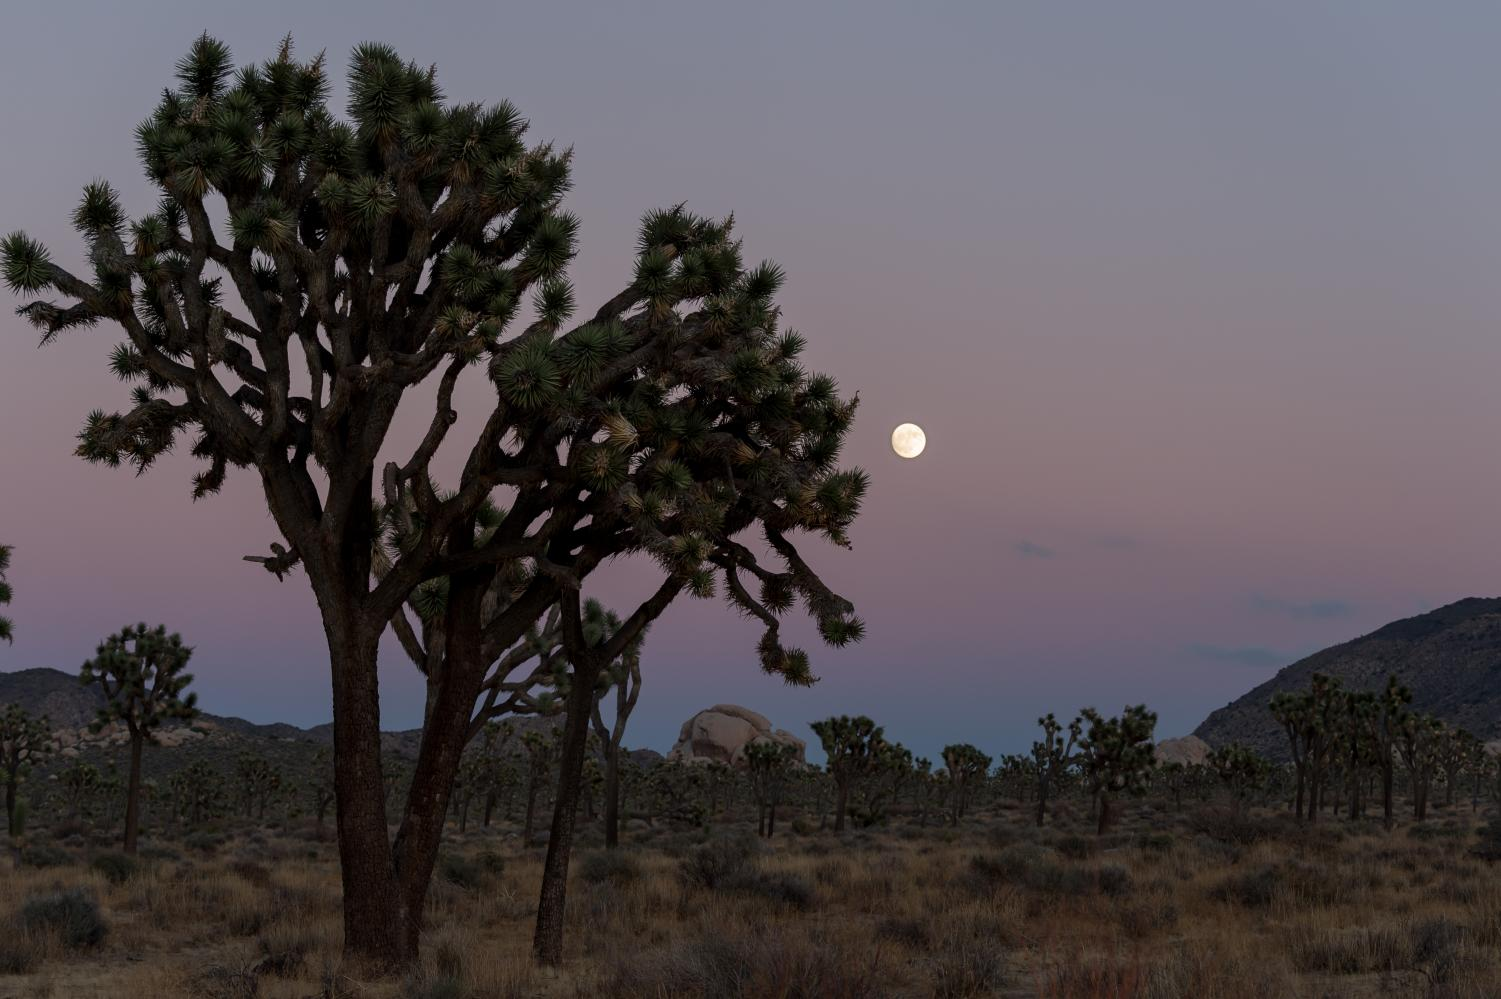 Photo of the Joshua Tree courtesy of the National Park Services